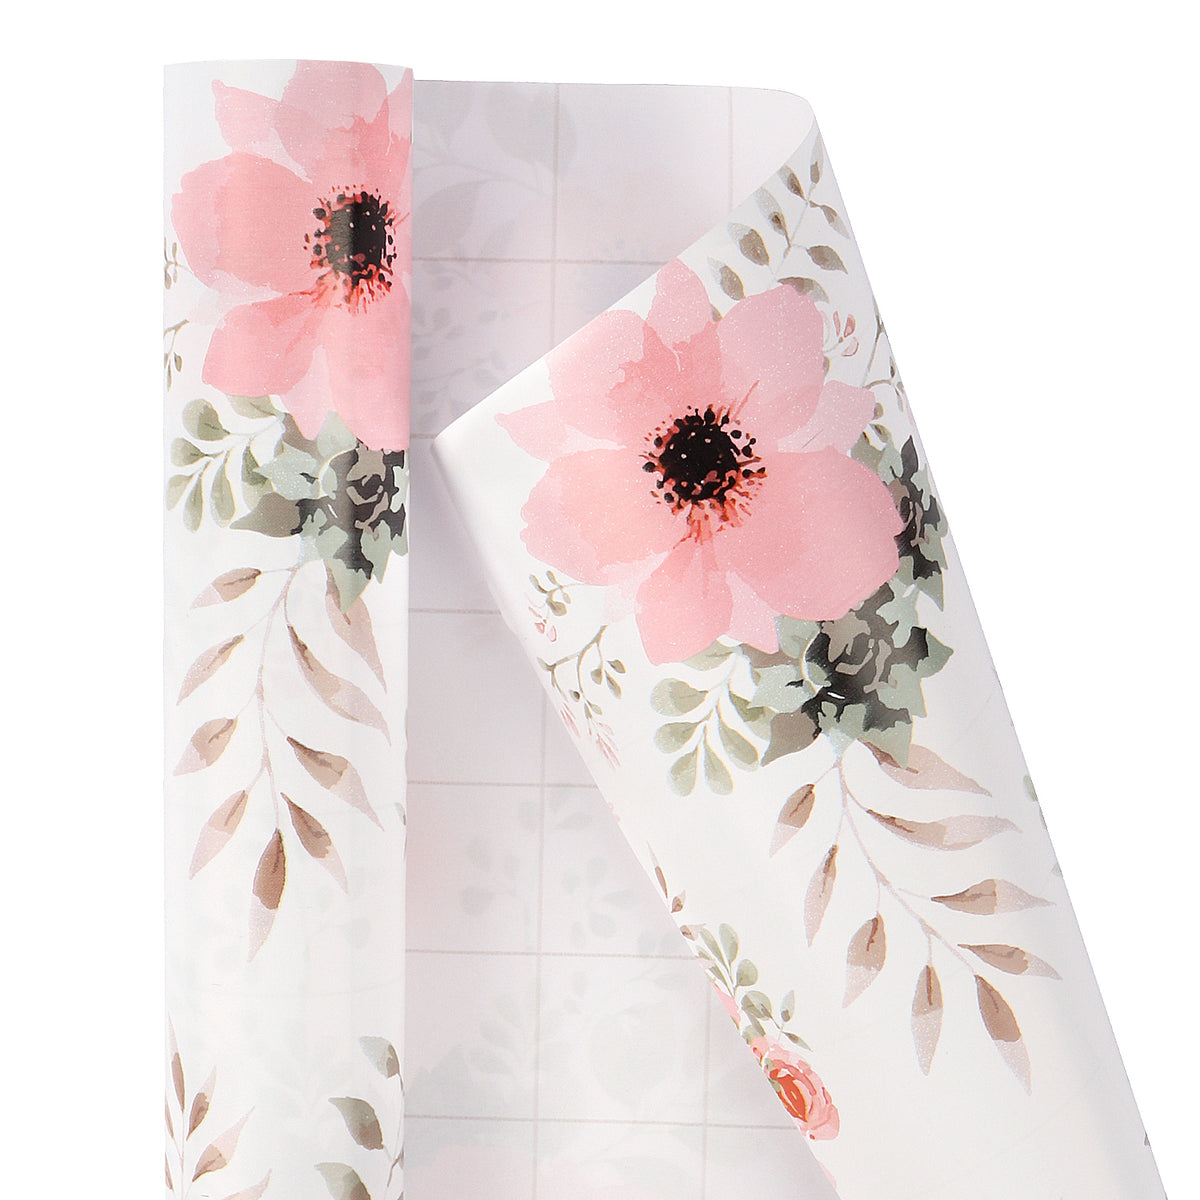 Wrapaholic-3 Different-Floral- and-Butterfly-Design-Wrapping-Paper -Roll-(14.4 sq. ft.TTL.)-4